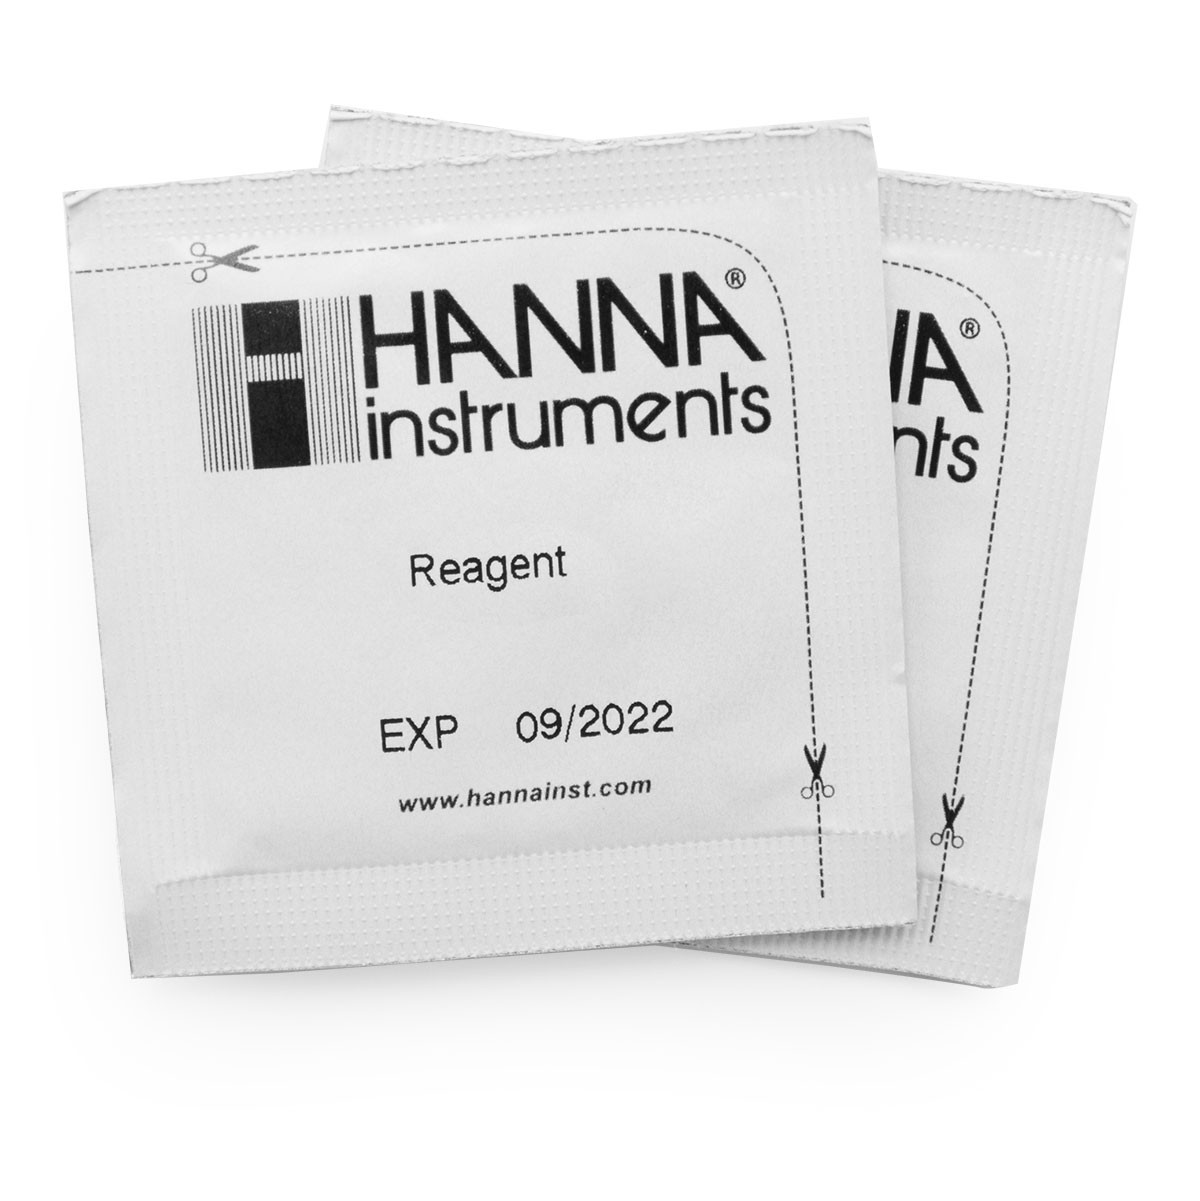 Cyanuric Acid Reagents (100 tests)